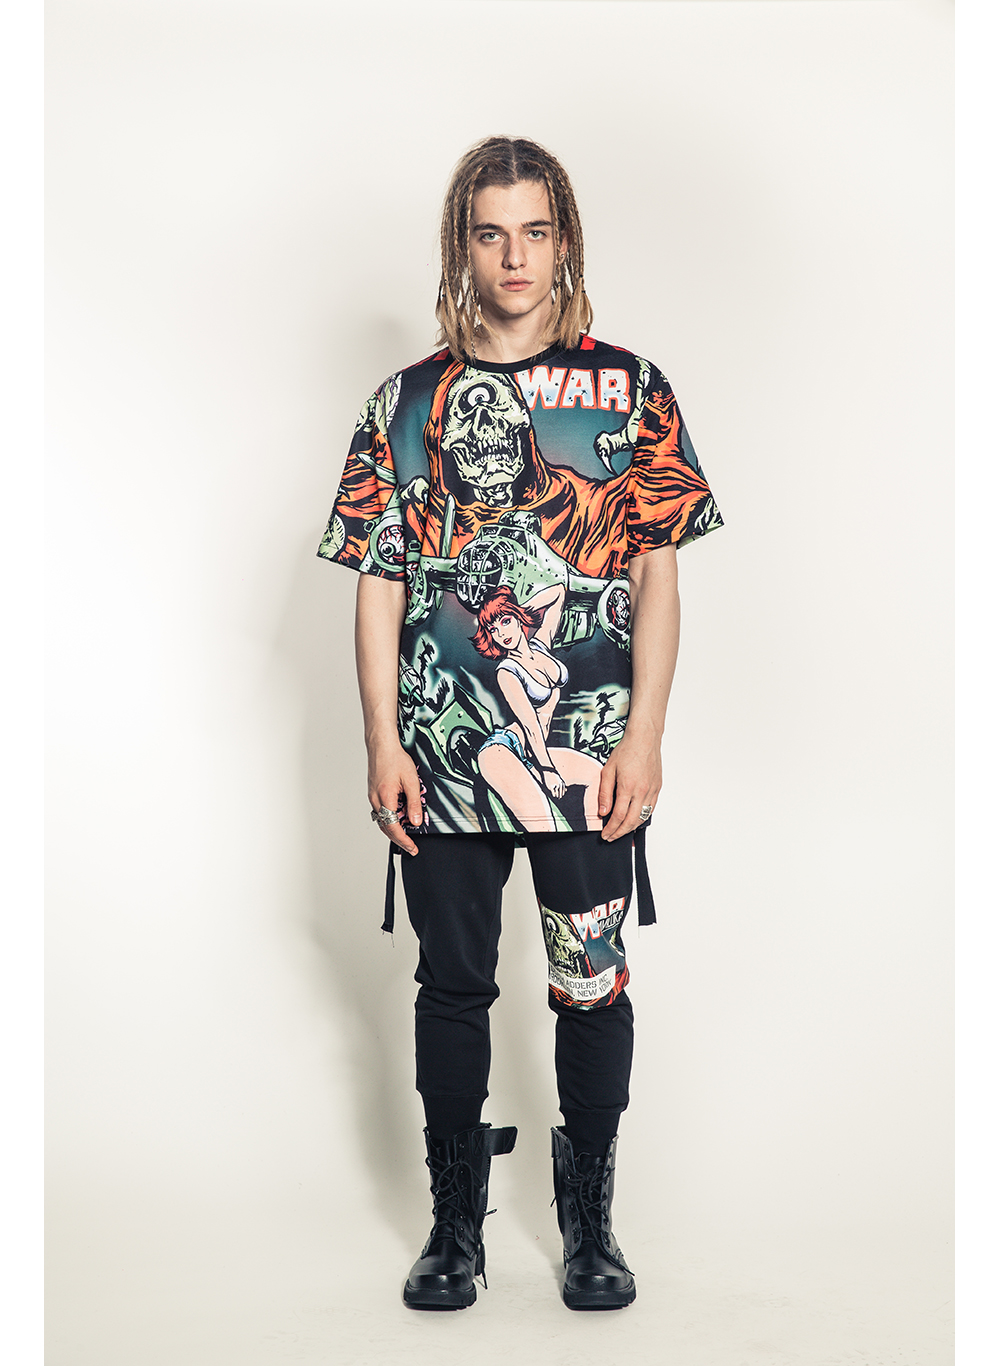 Lamour War Allover Sublimated Tee